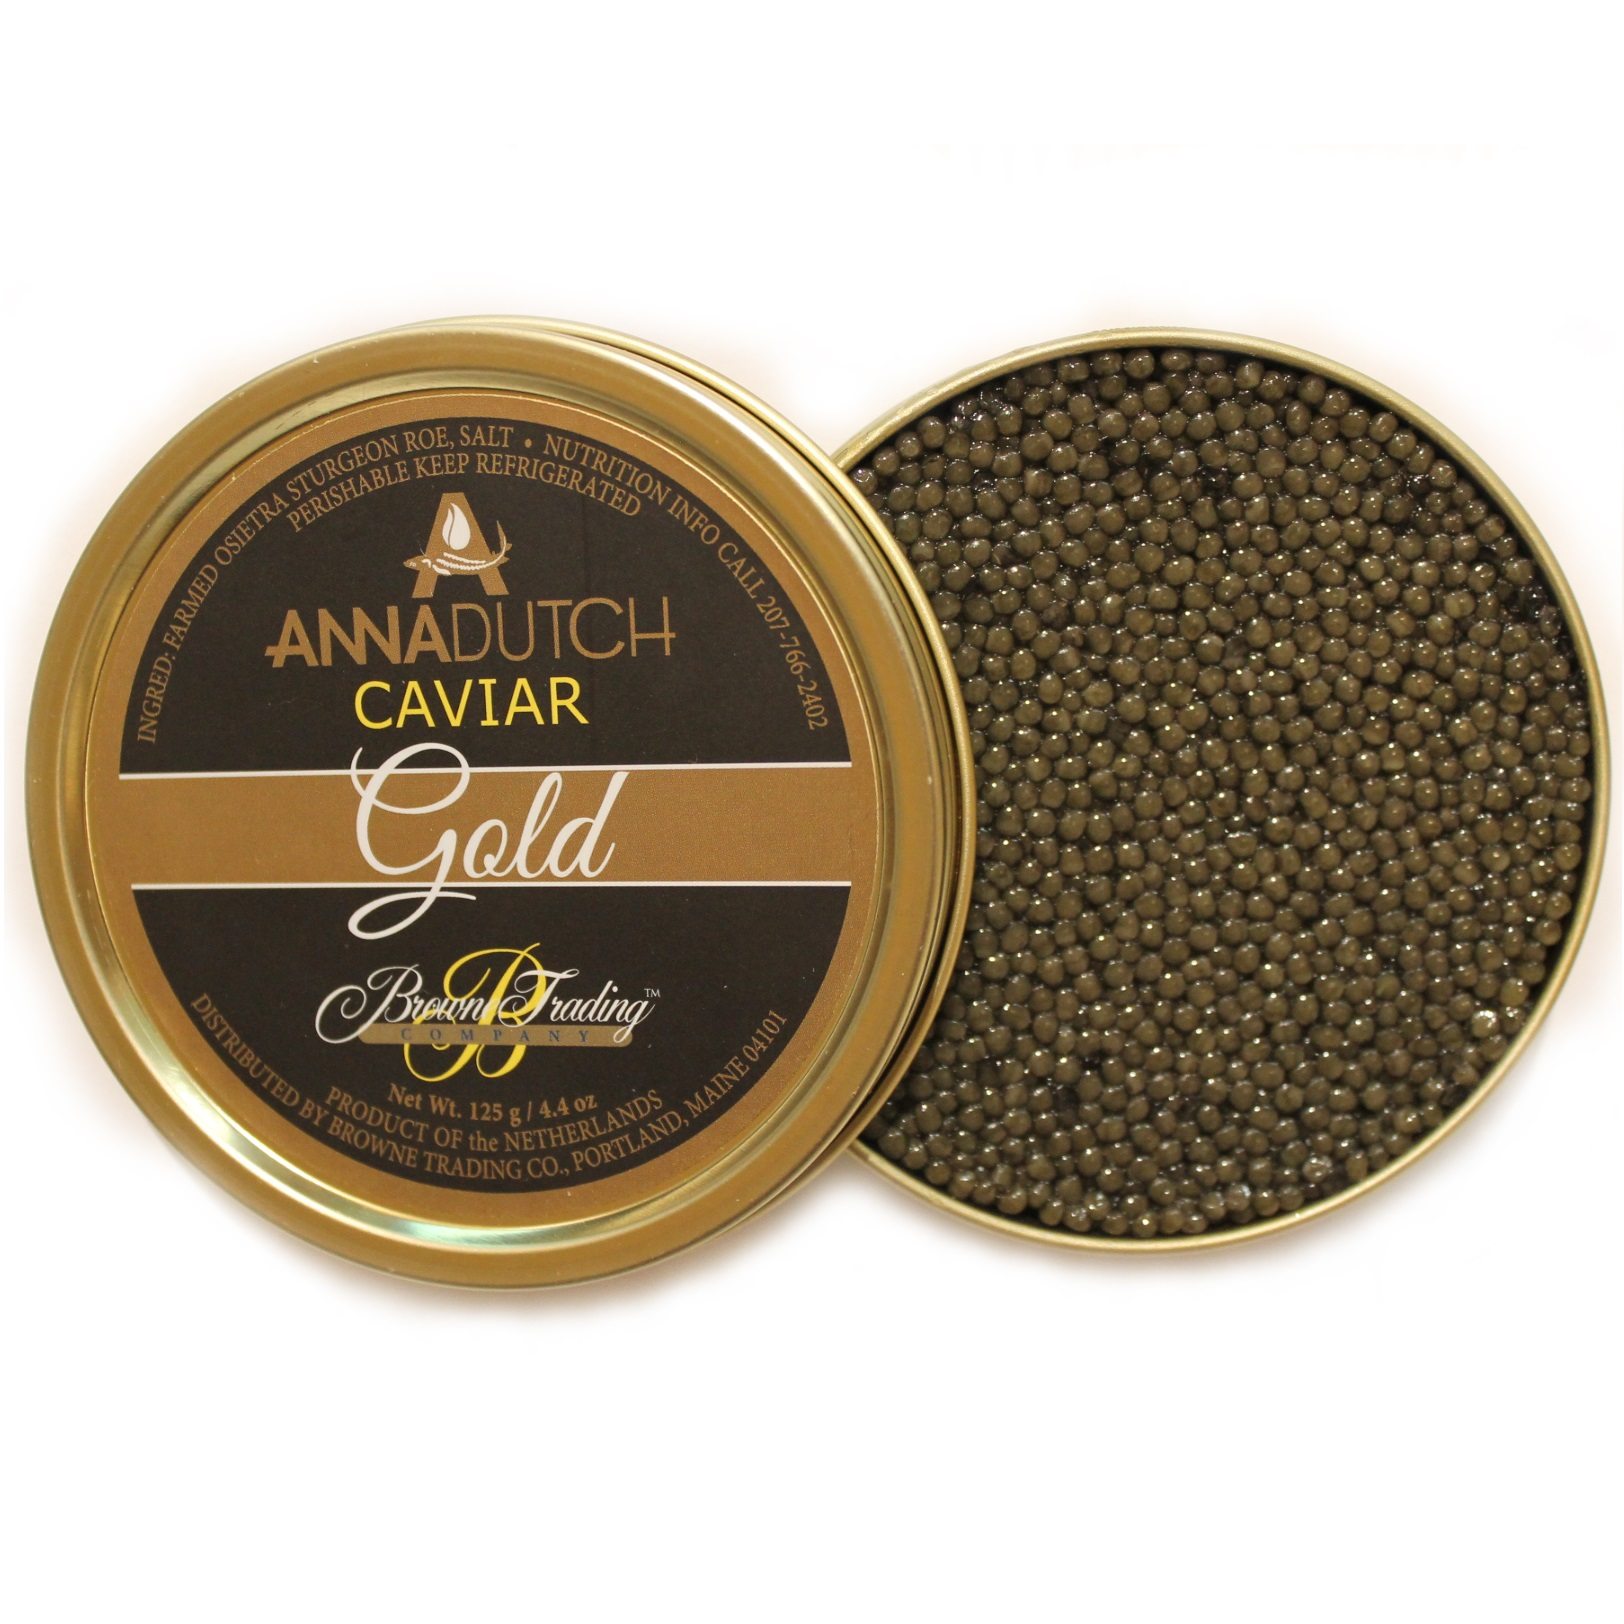 Anna Dutch Gold Caviar